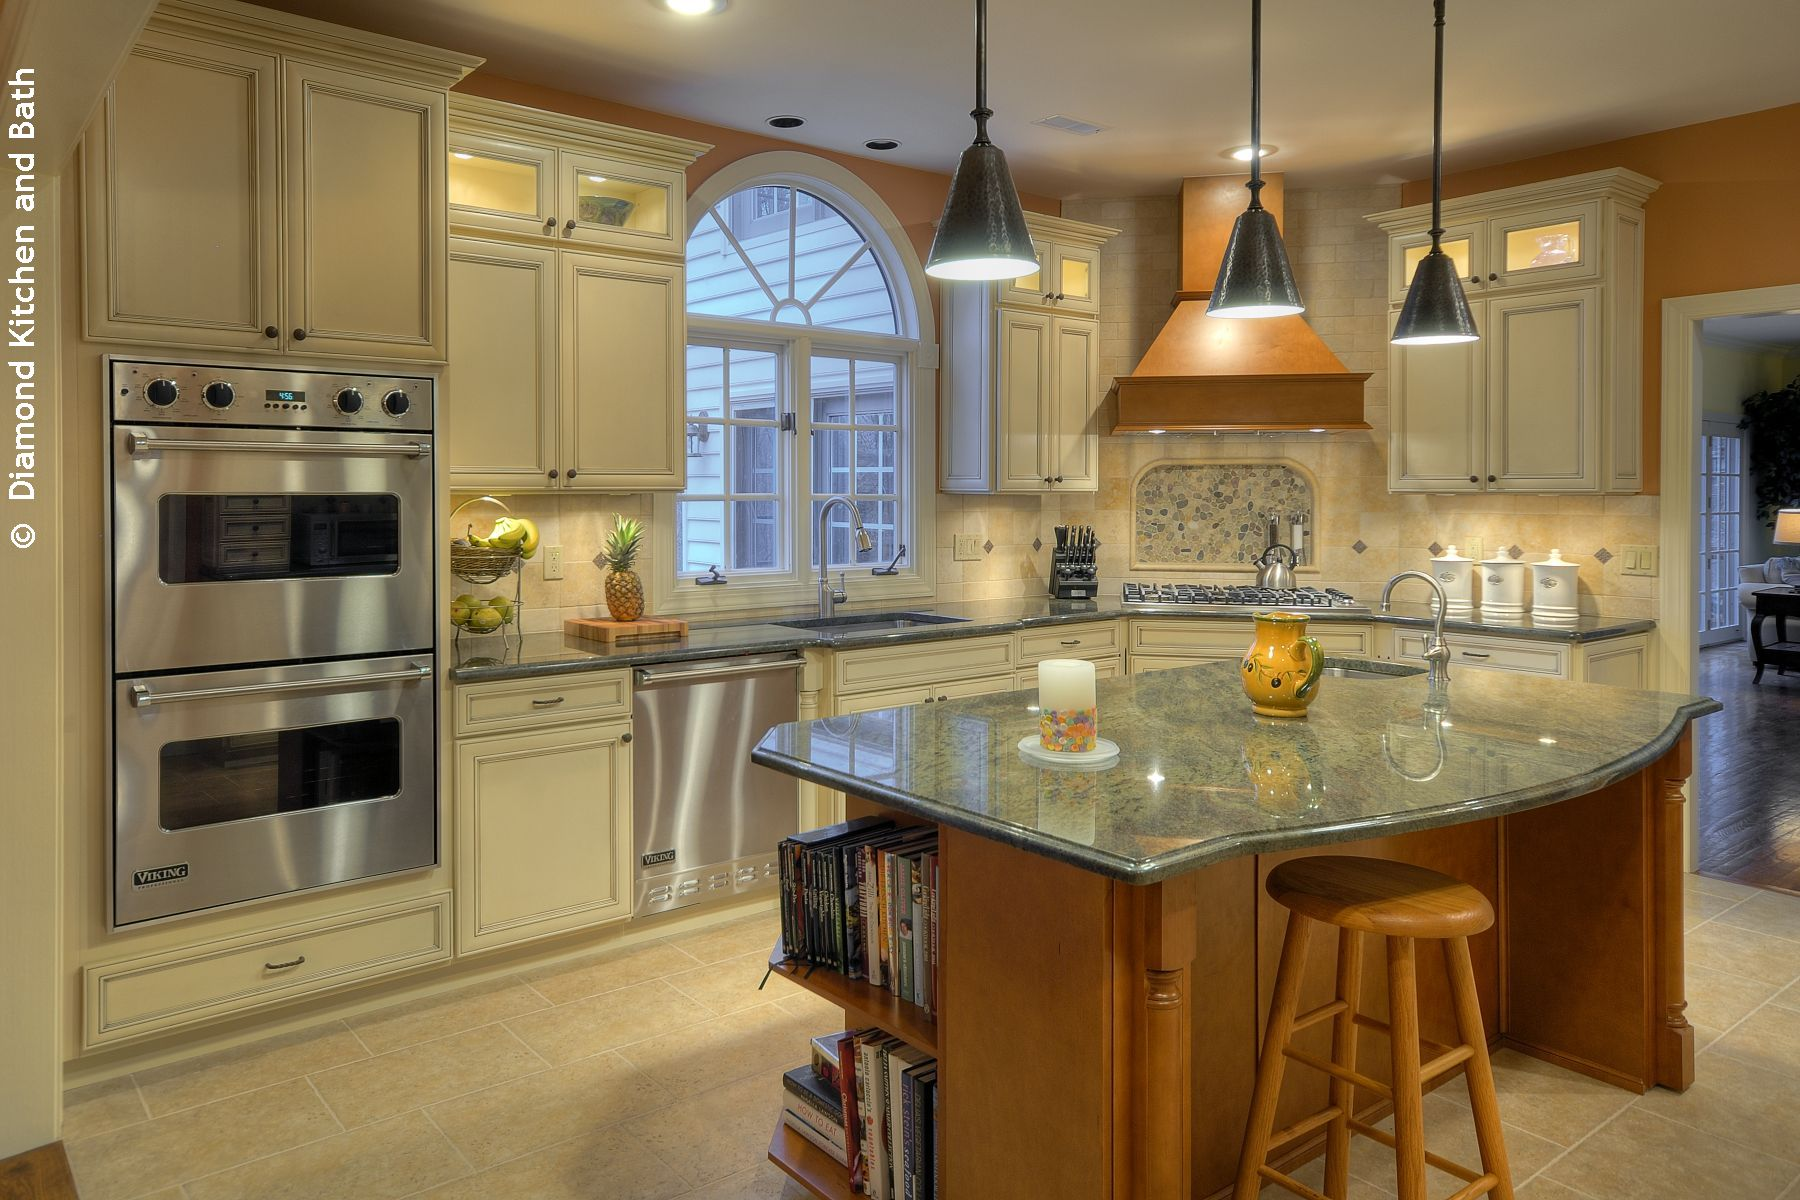 Kitchen Remodeling Virtual Tour in Newtown, PA